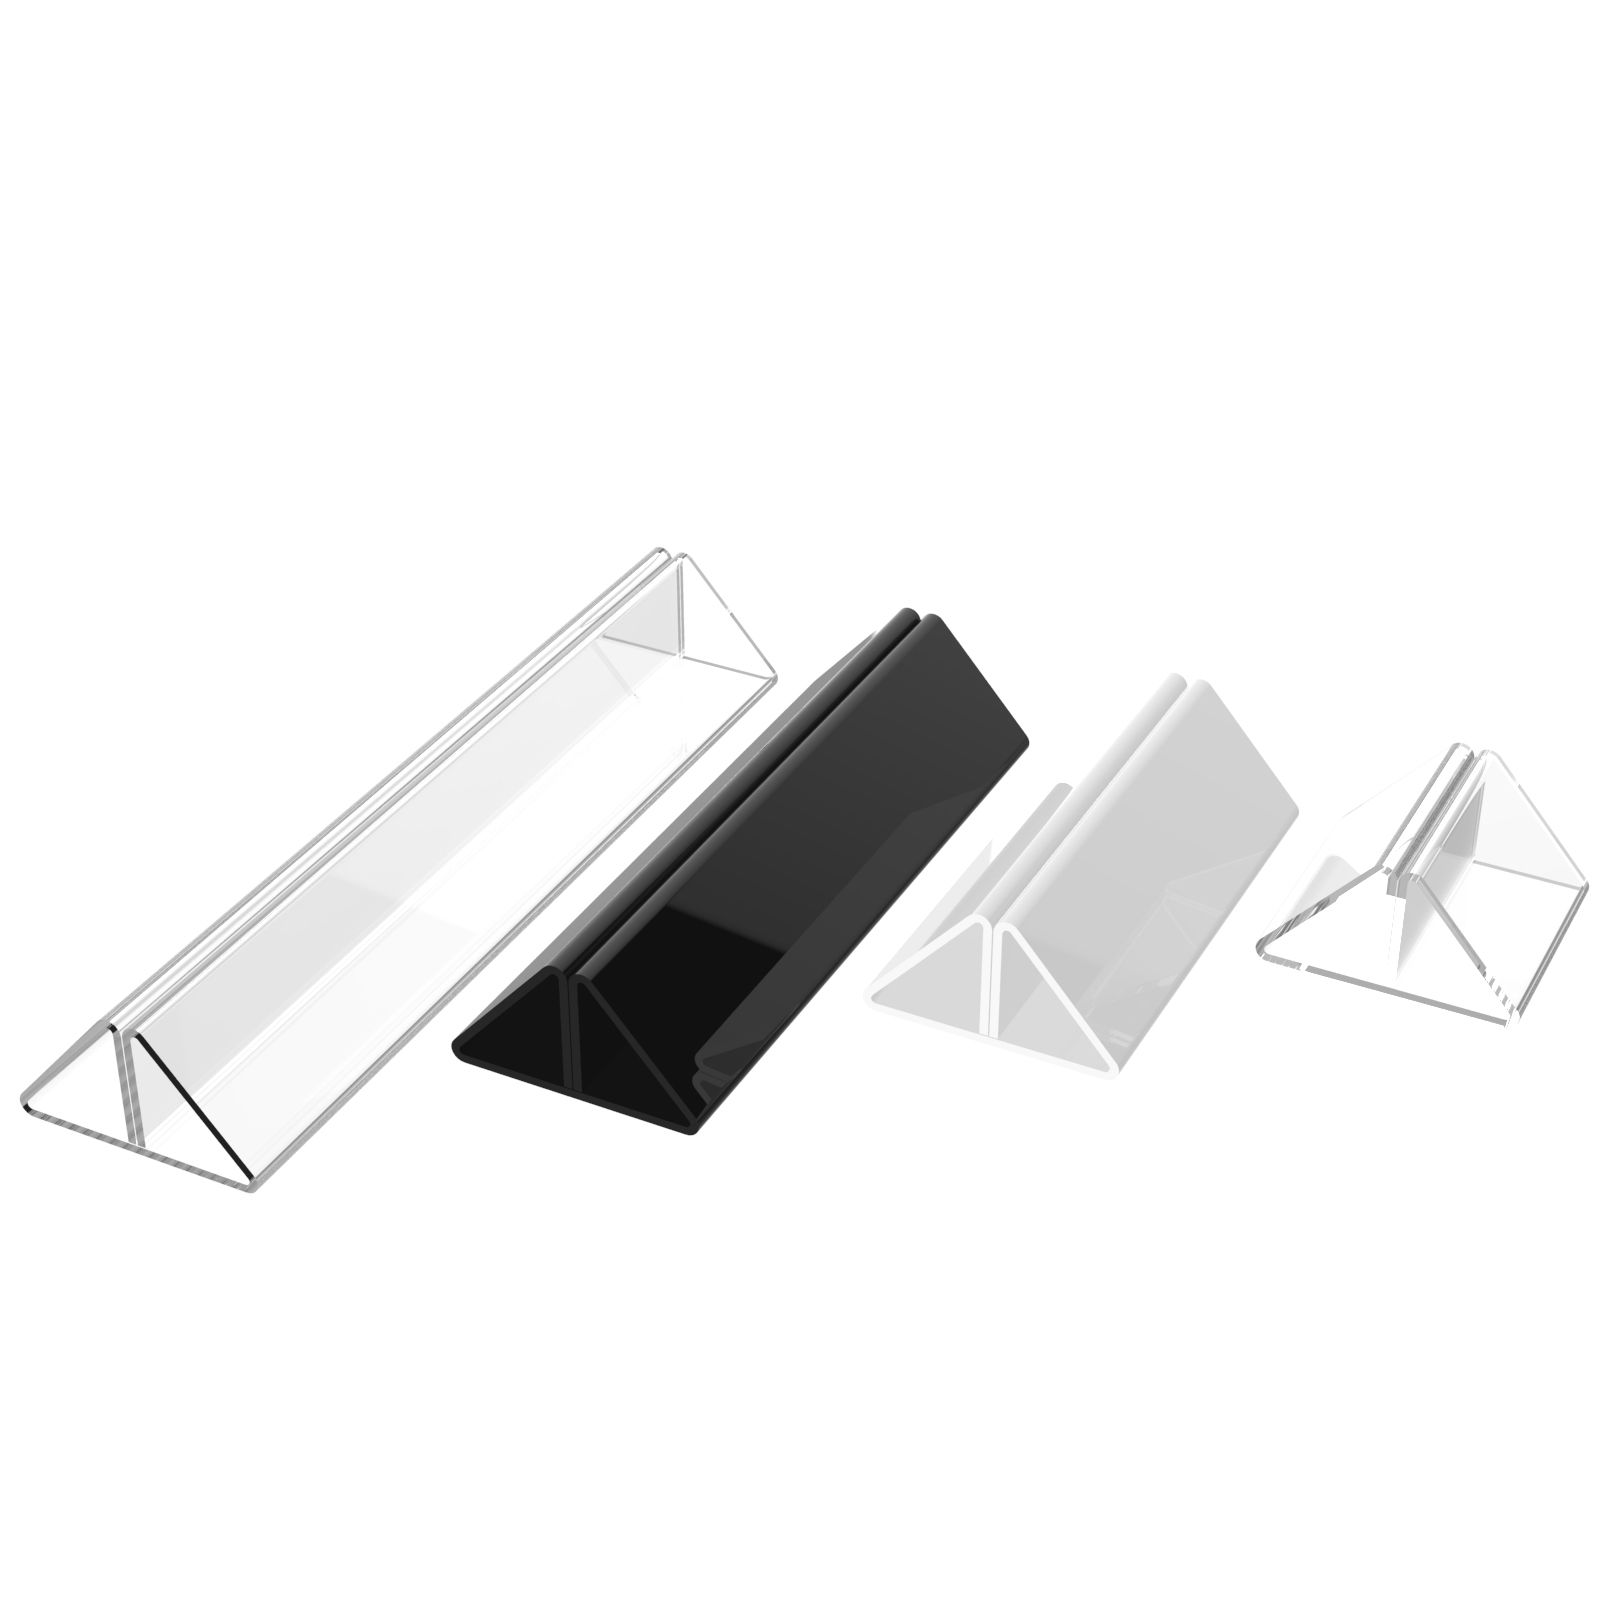 Acrylic Menu Card Holder Base  sc 1 st  PlasticsLand & Acrylic Menu Card Holder Base u2013 PlasticsLand